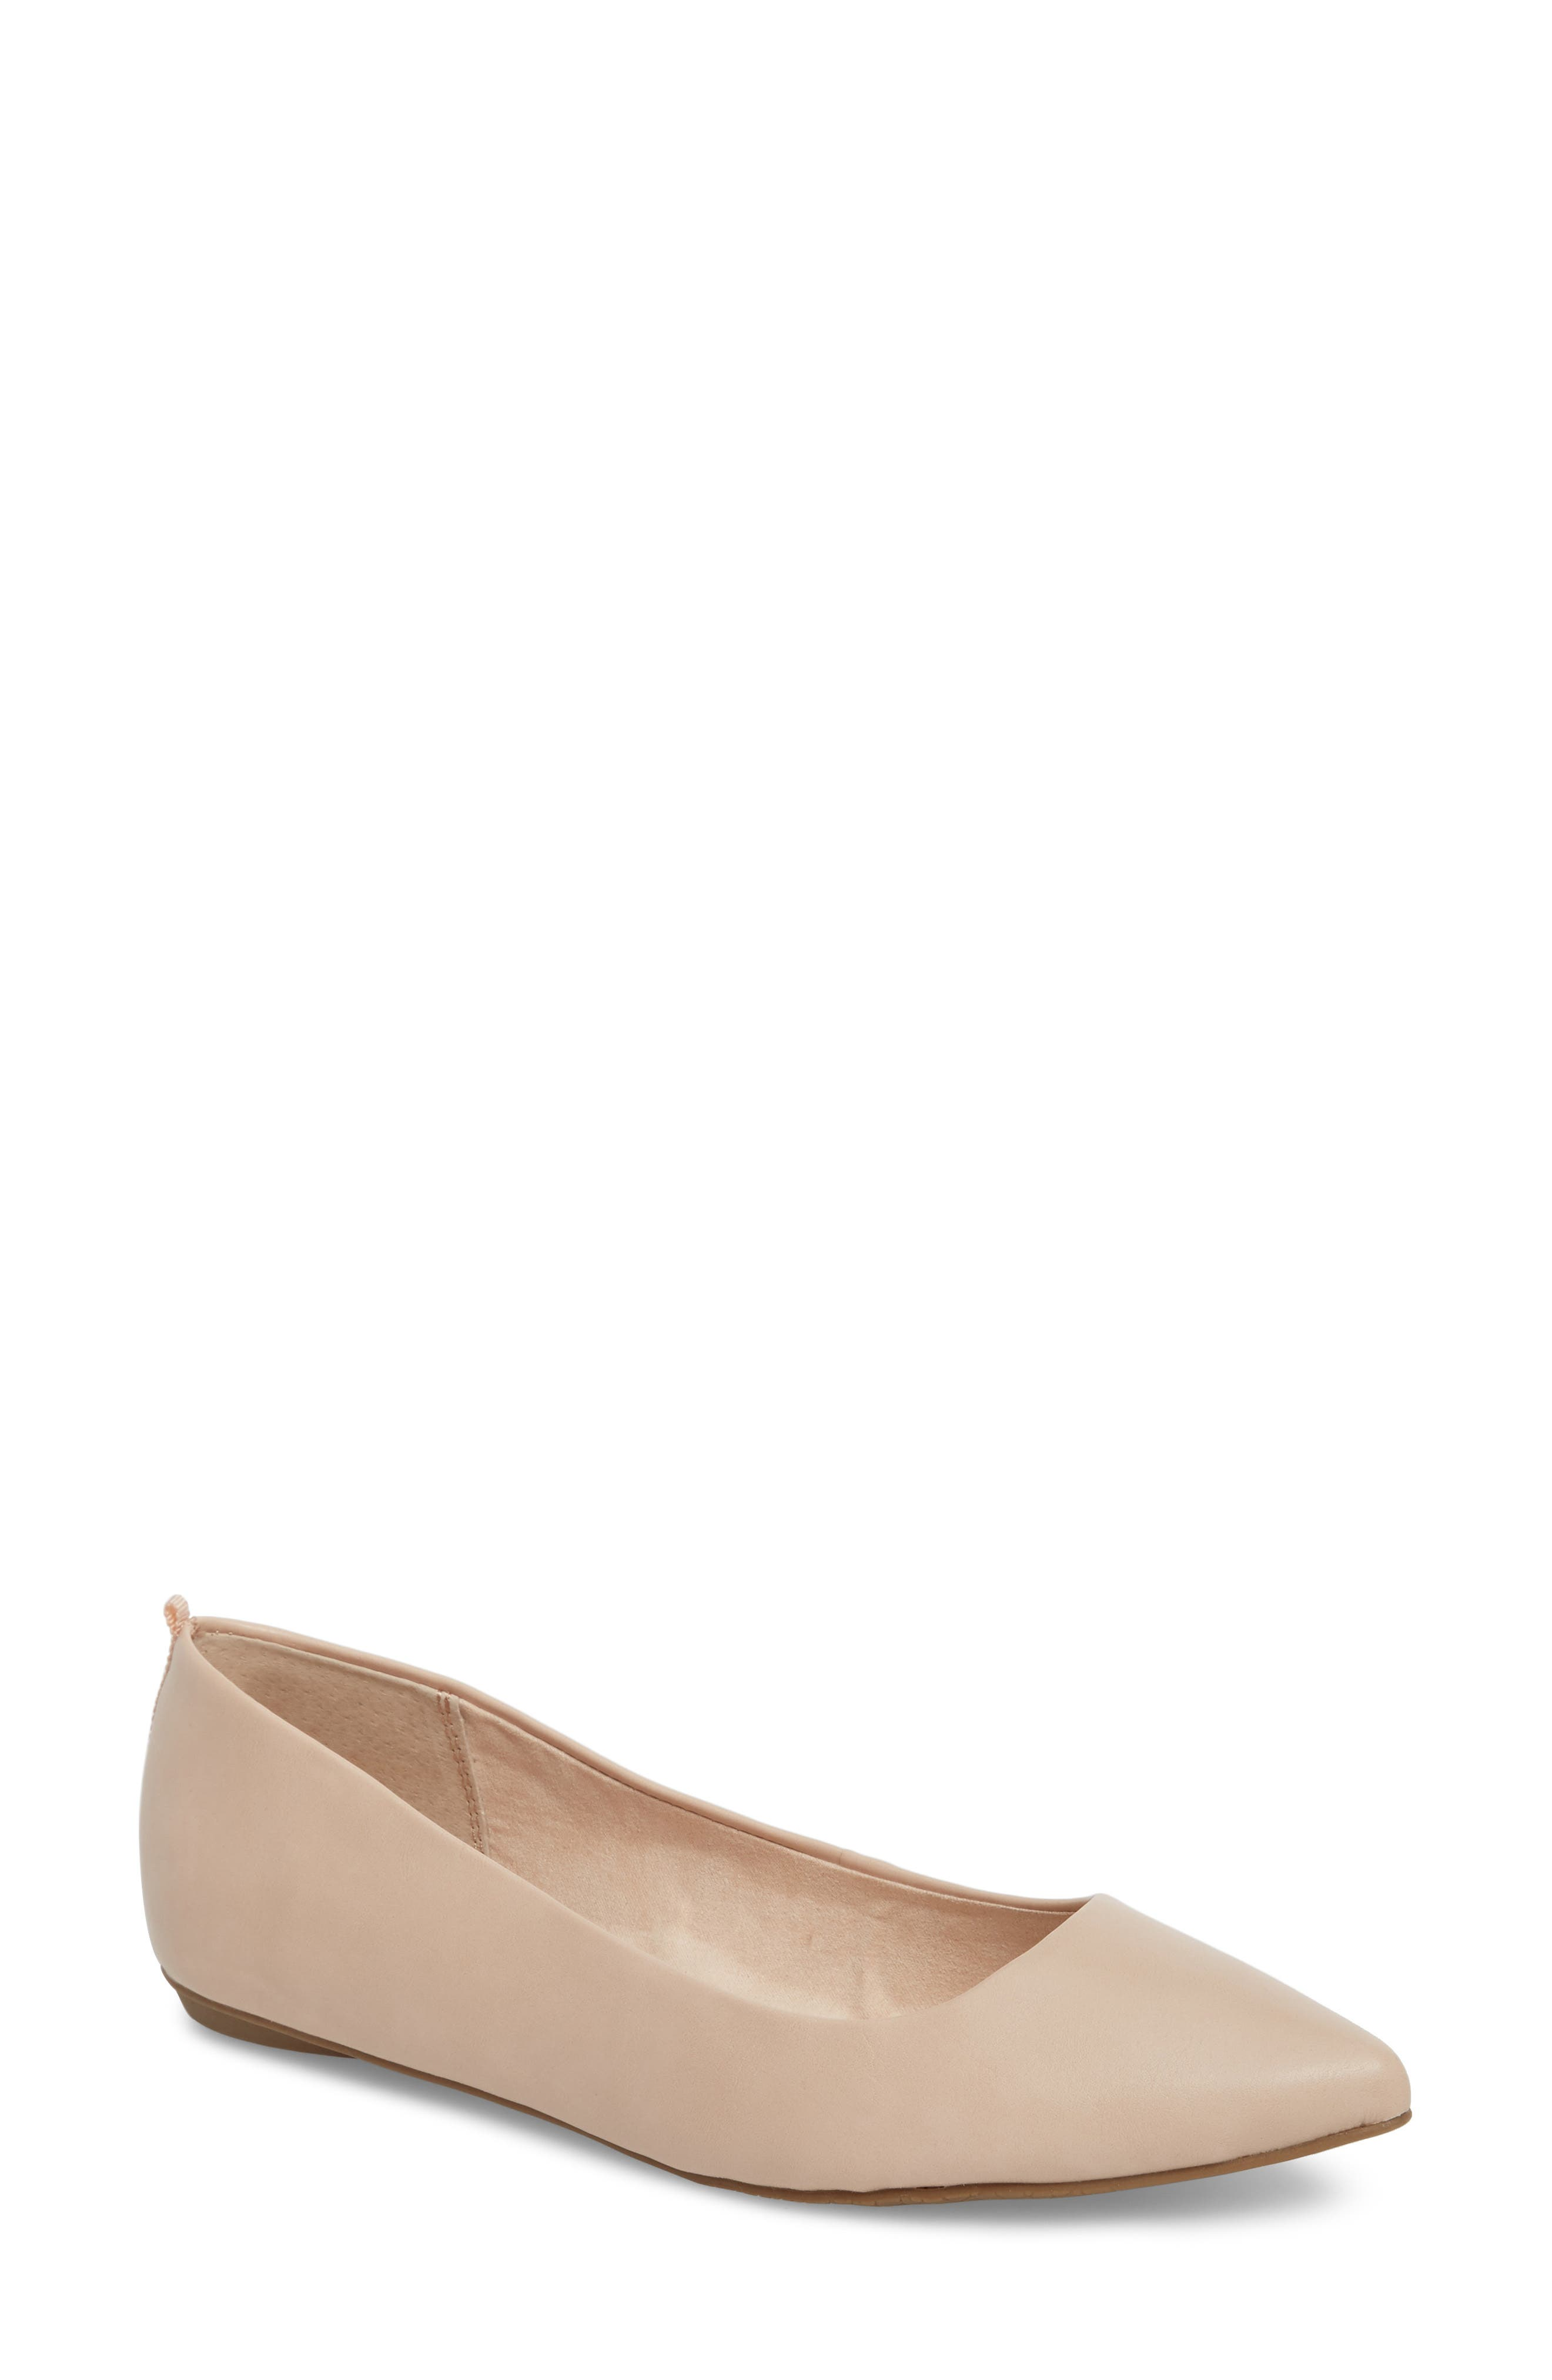 For Sale Popular Katrina' Pointy Toe Ghillie Flat Women Womens Cognac Faux Leather BP Womens Flats